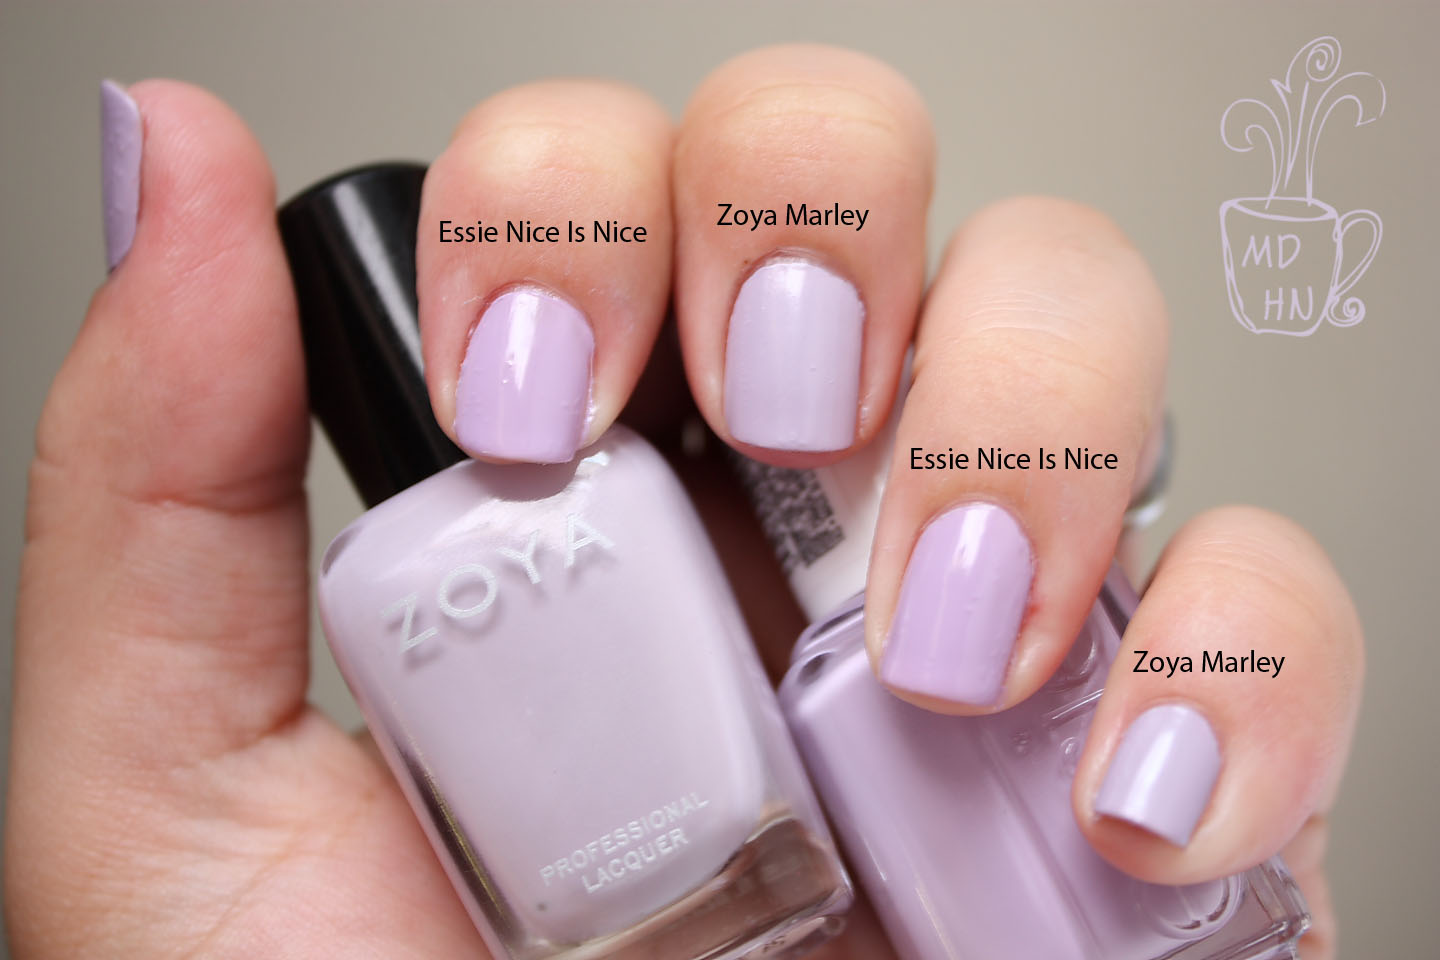 Mommy Does Her Nails: Zoya Marley and Essie Nice and Nice... Face-off